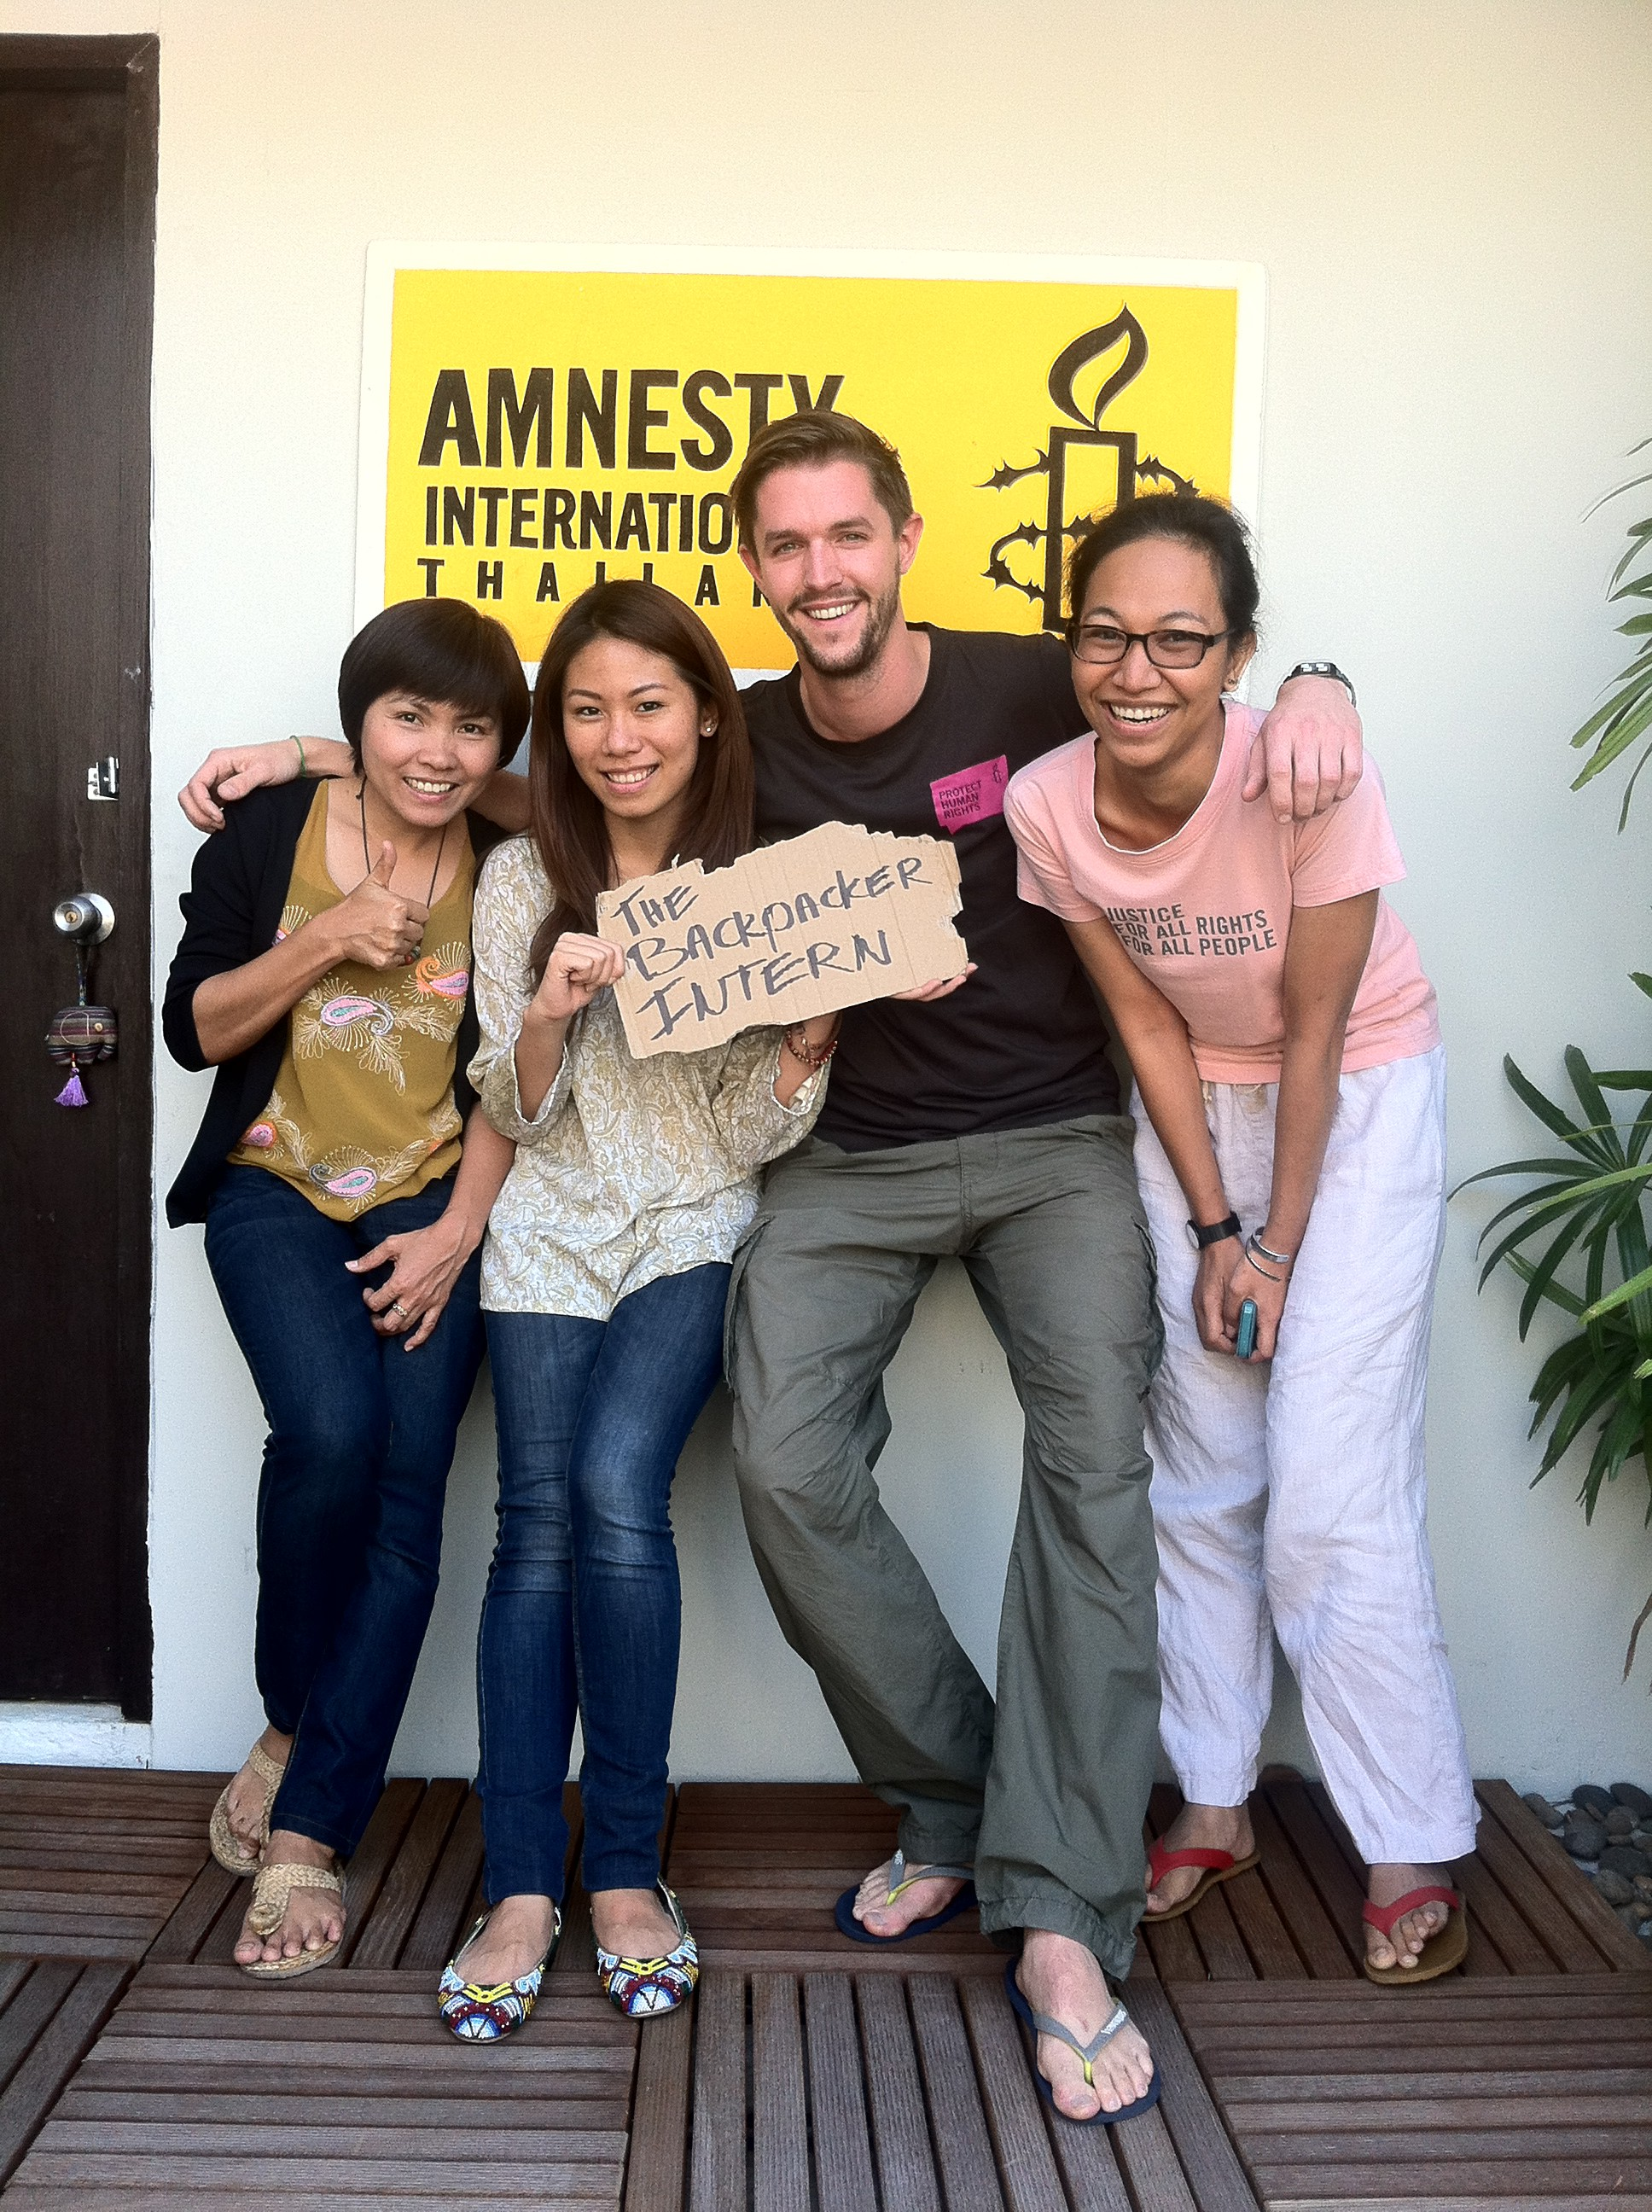 Amnesty International Thailand - The Backpacker Intern